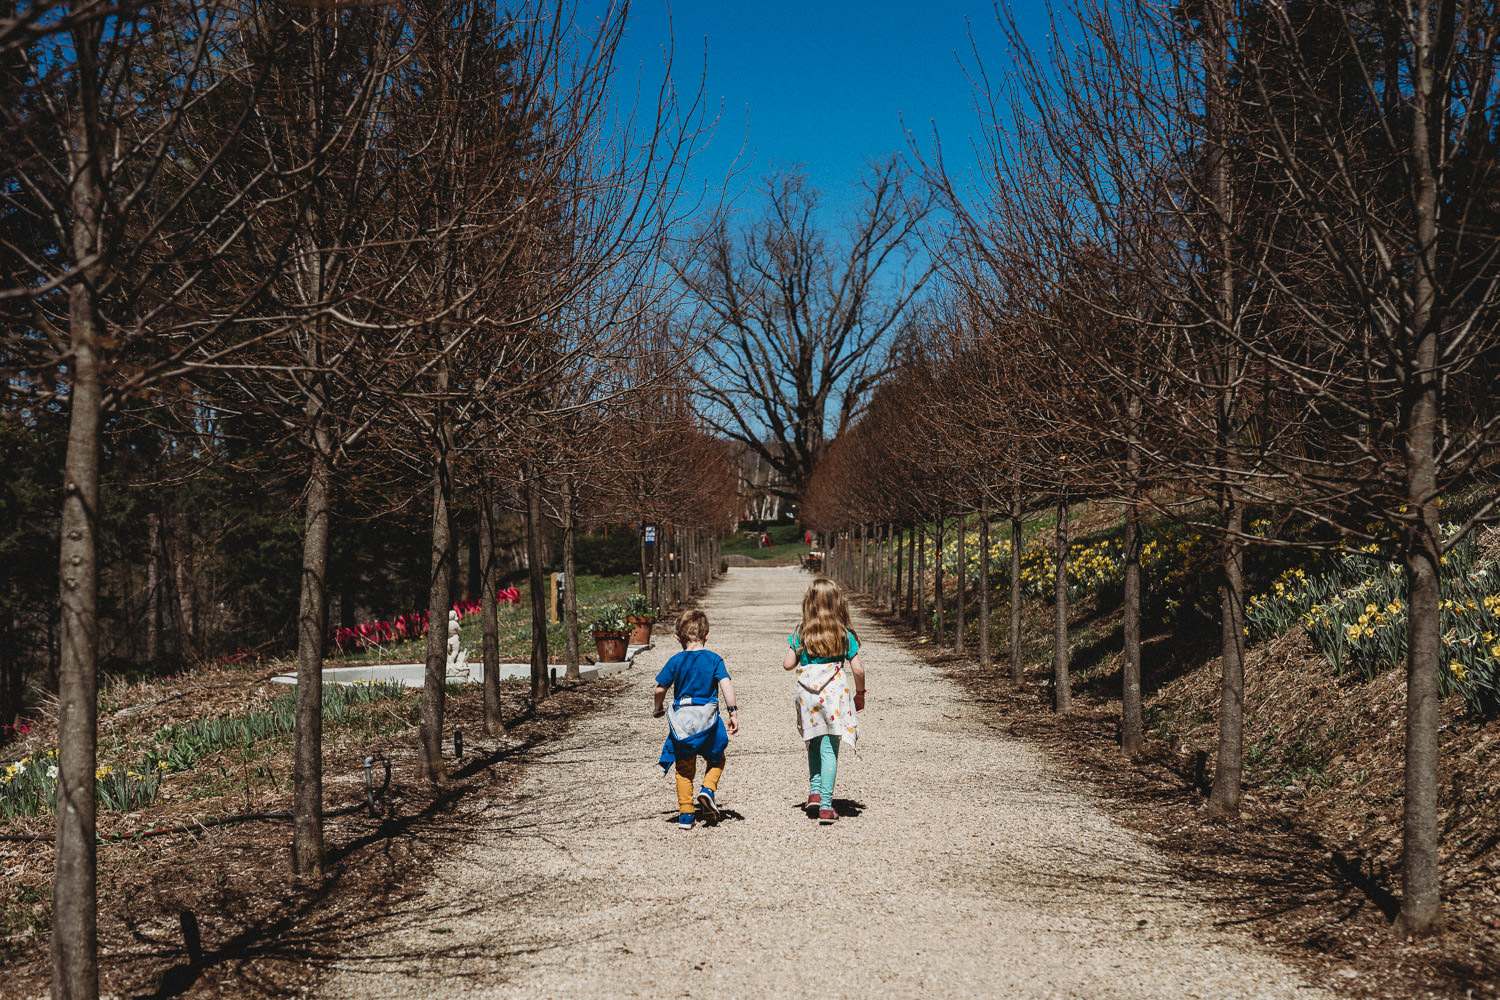 Two children walk down a path together.